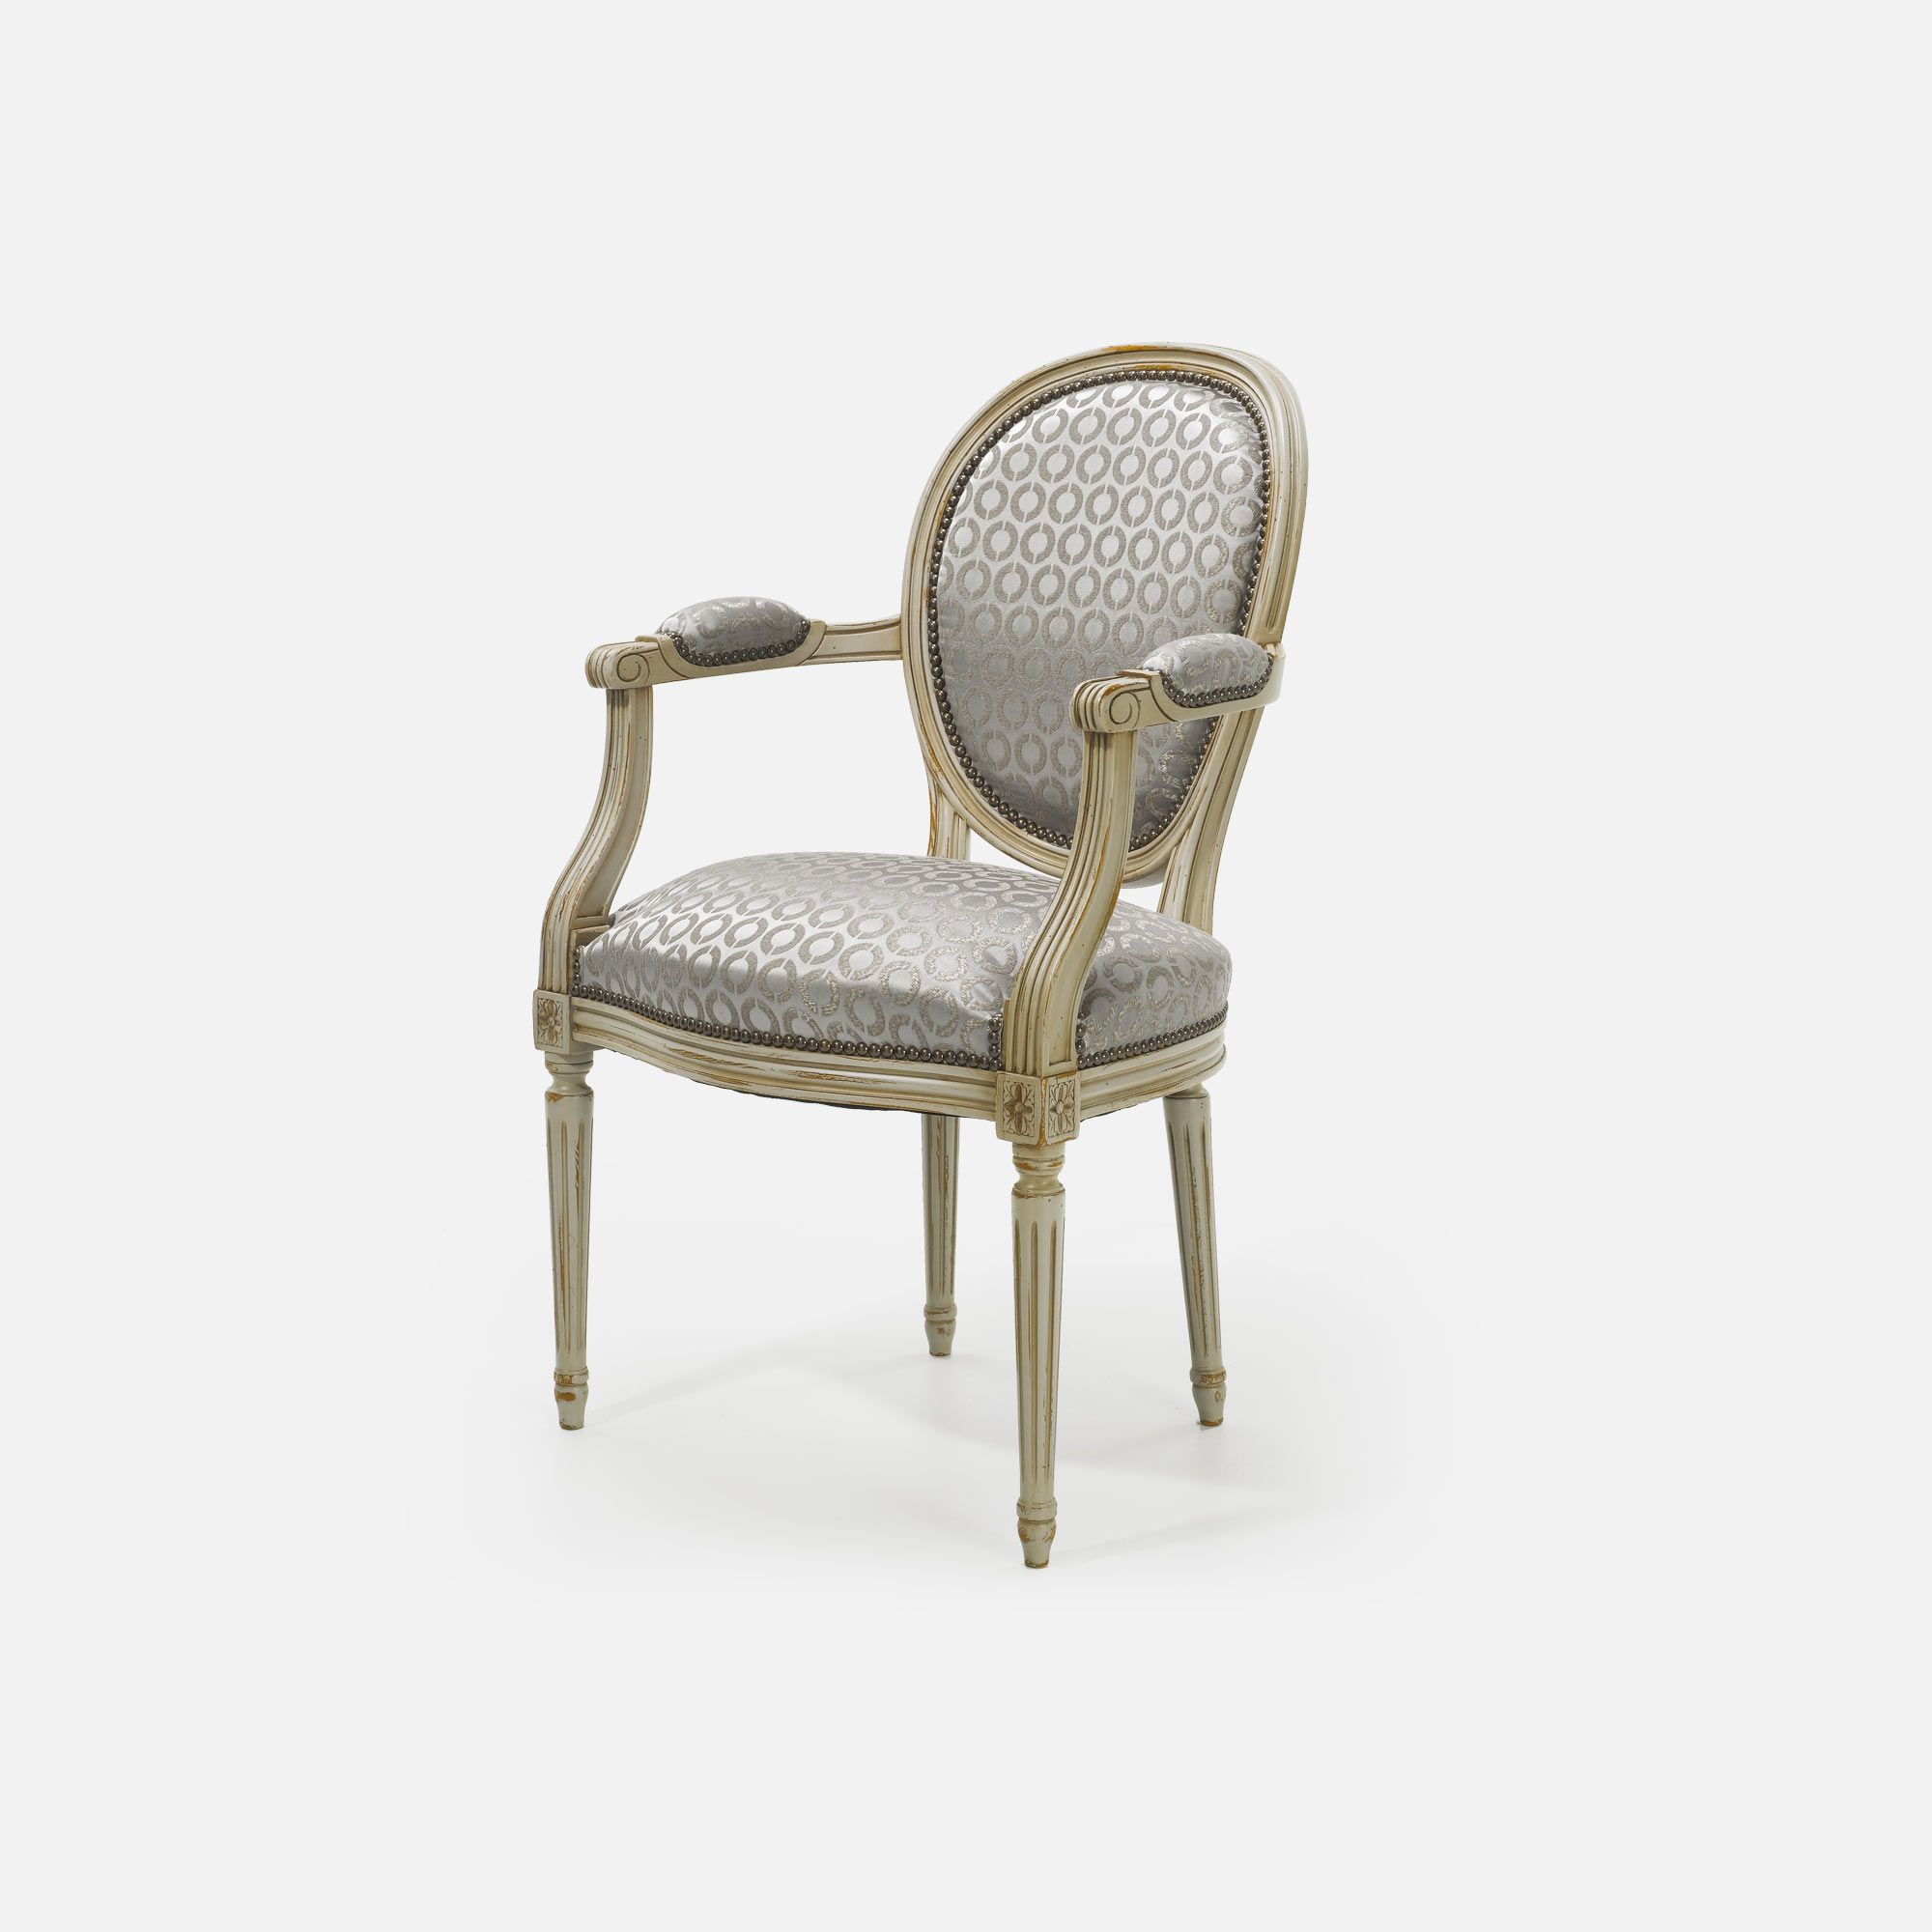 Fauteuils Medaillon Medallion Armchair For Hotel Restaurant Bar Louis Xvi Collinet